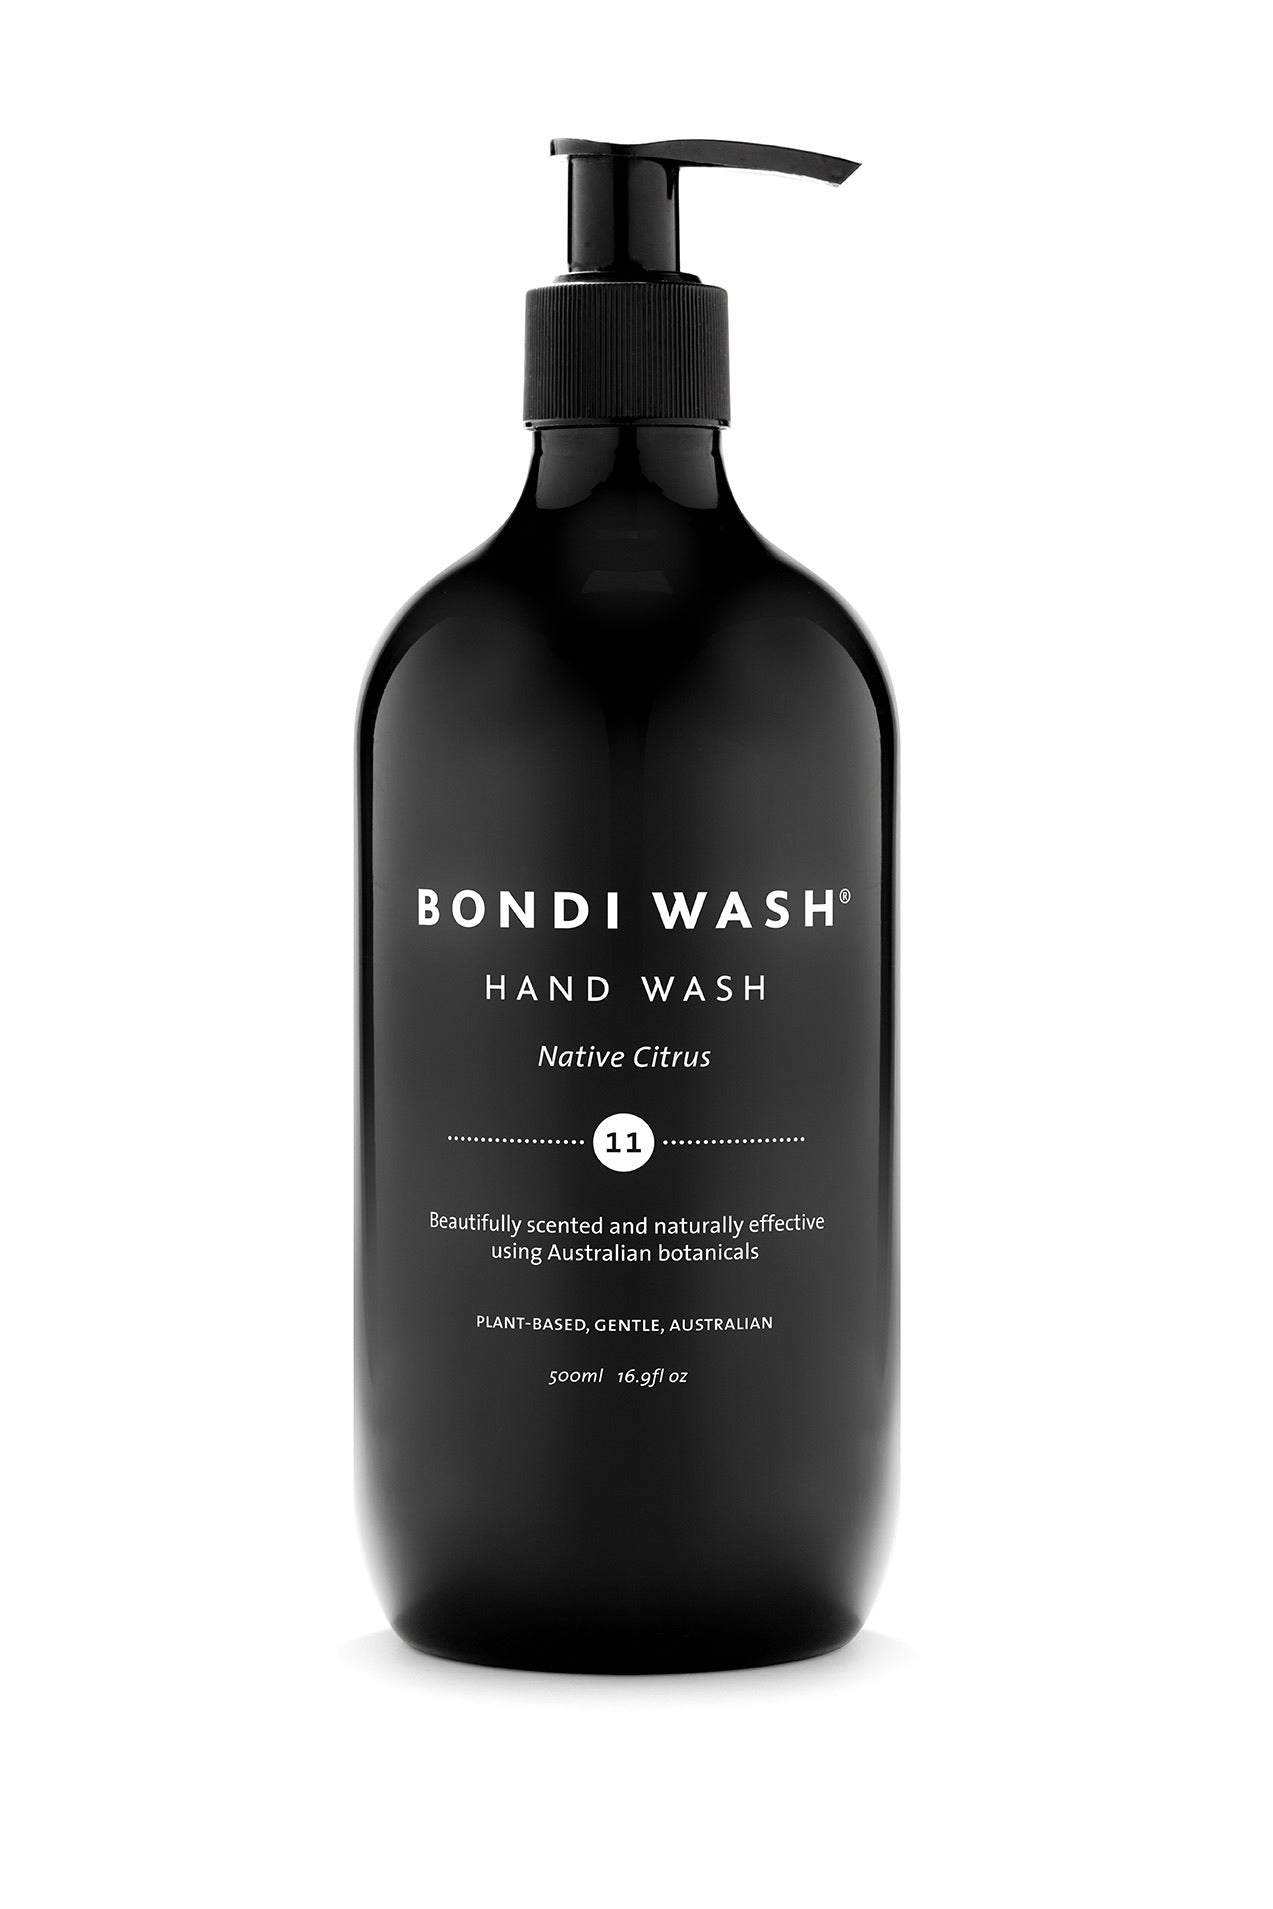 Native Citrus Hand Wash - Bondi Wash